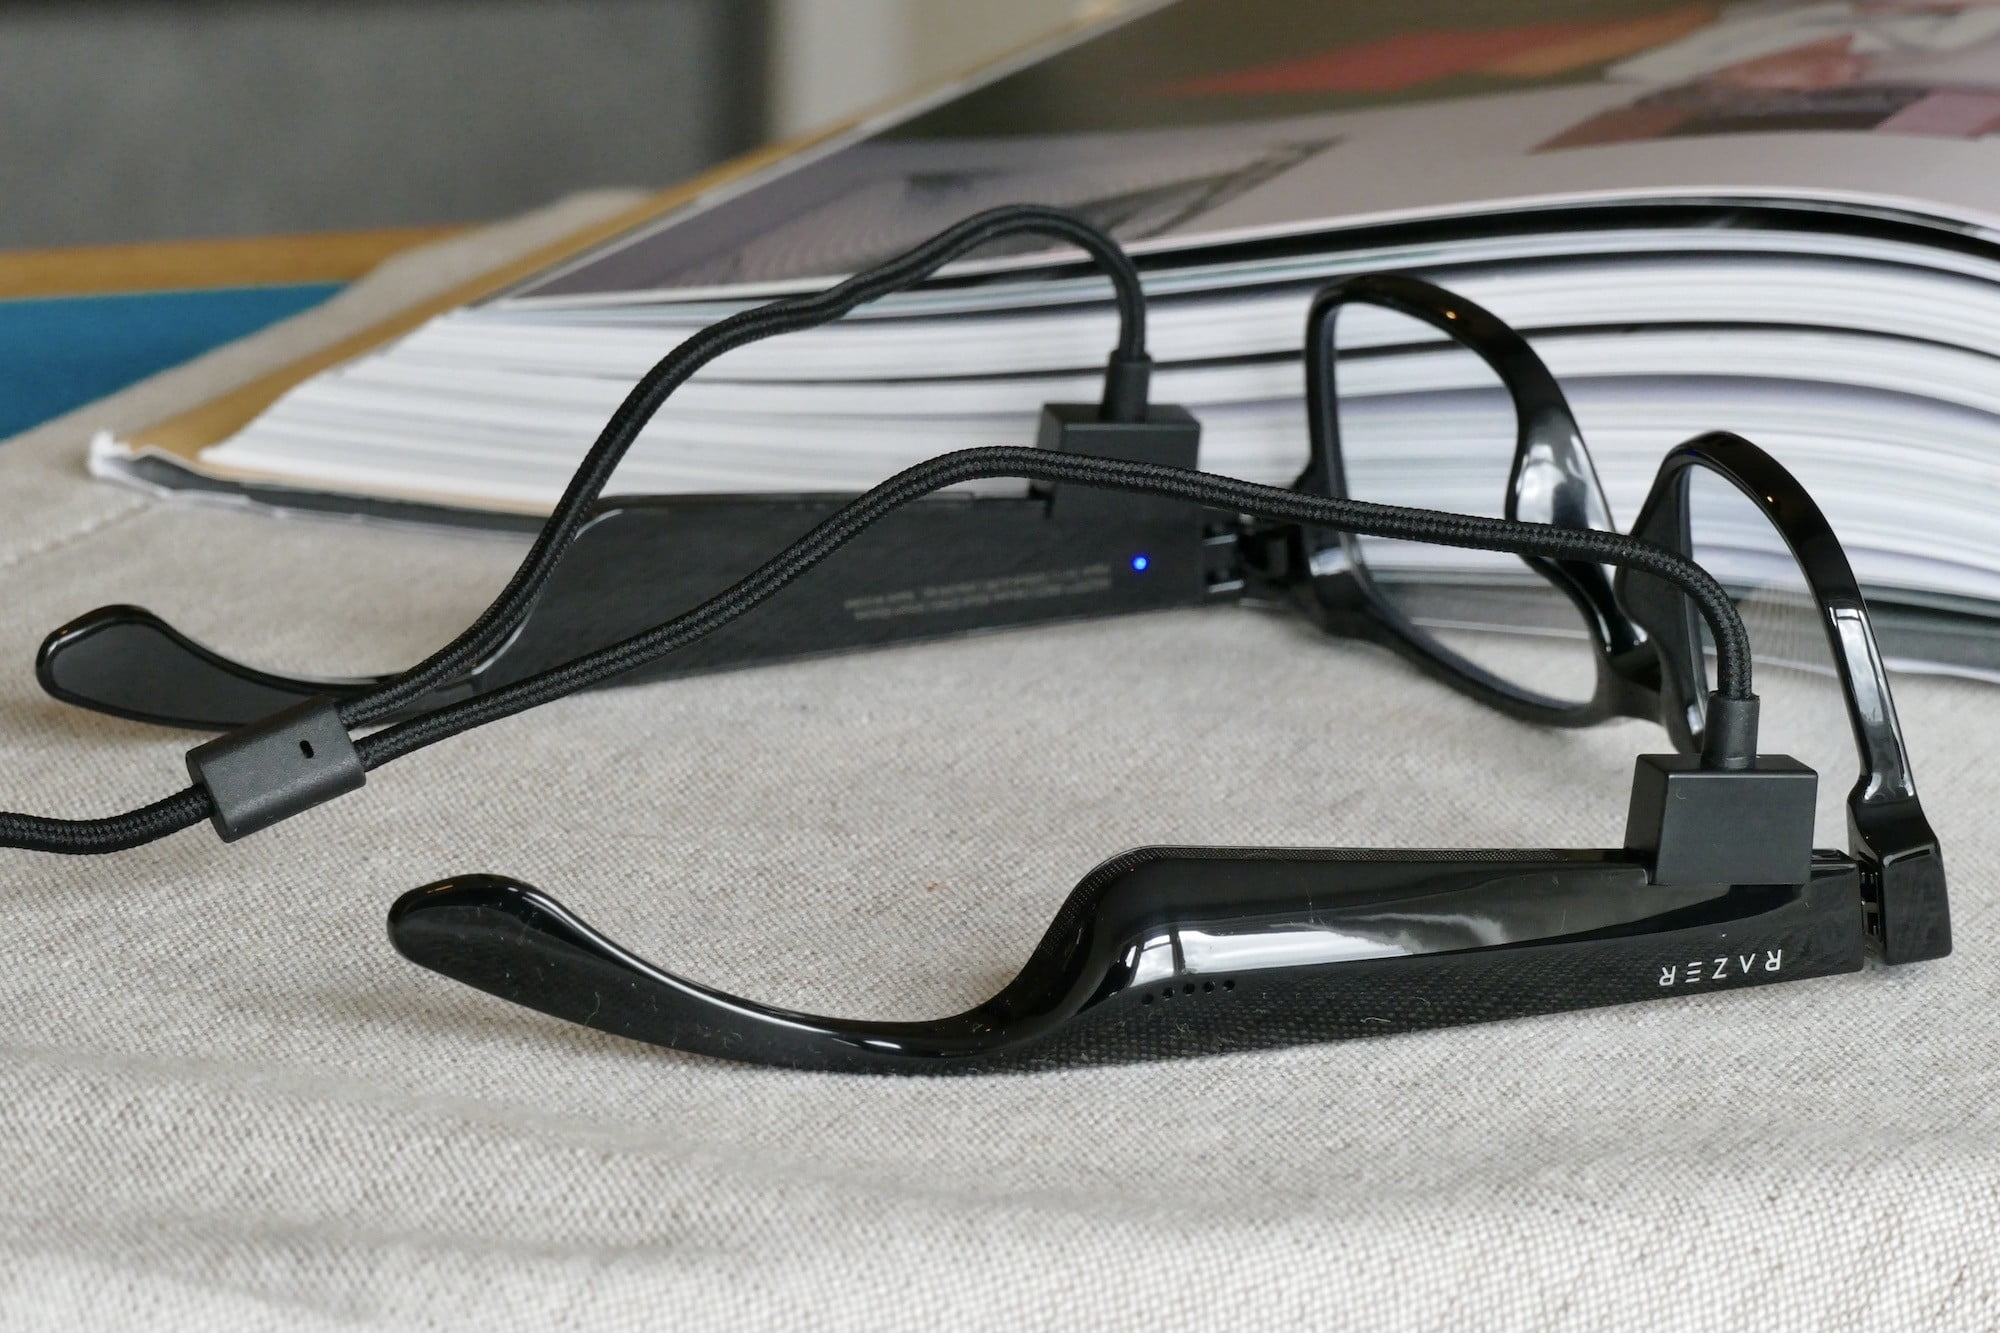 razer anzu smartglasses work best at home charging